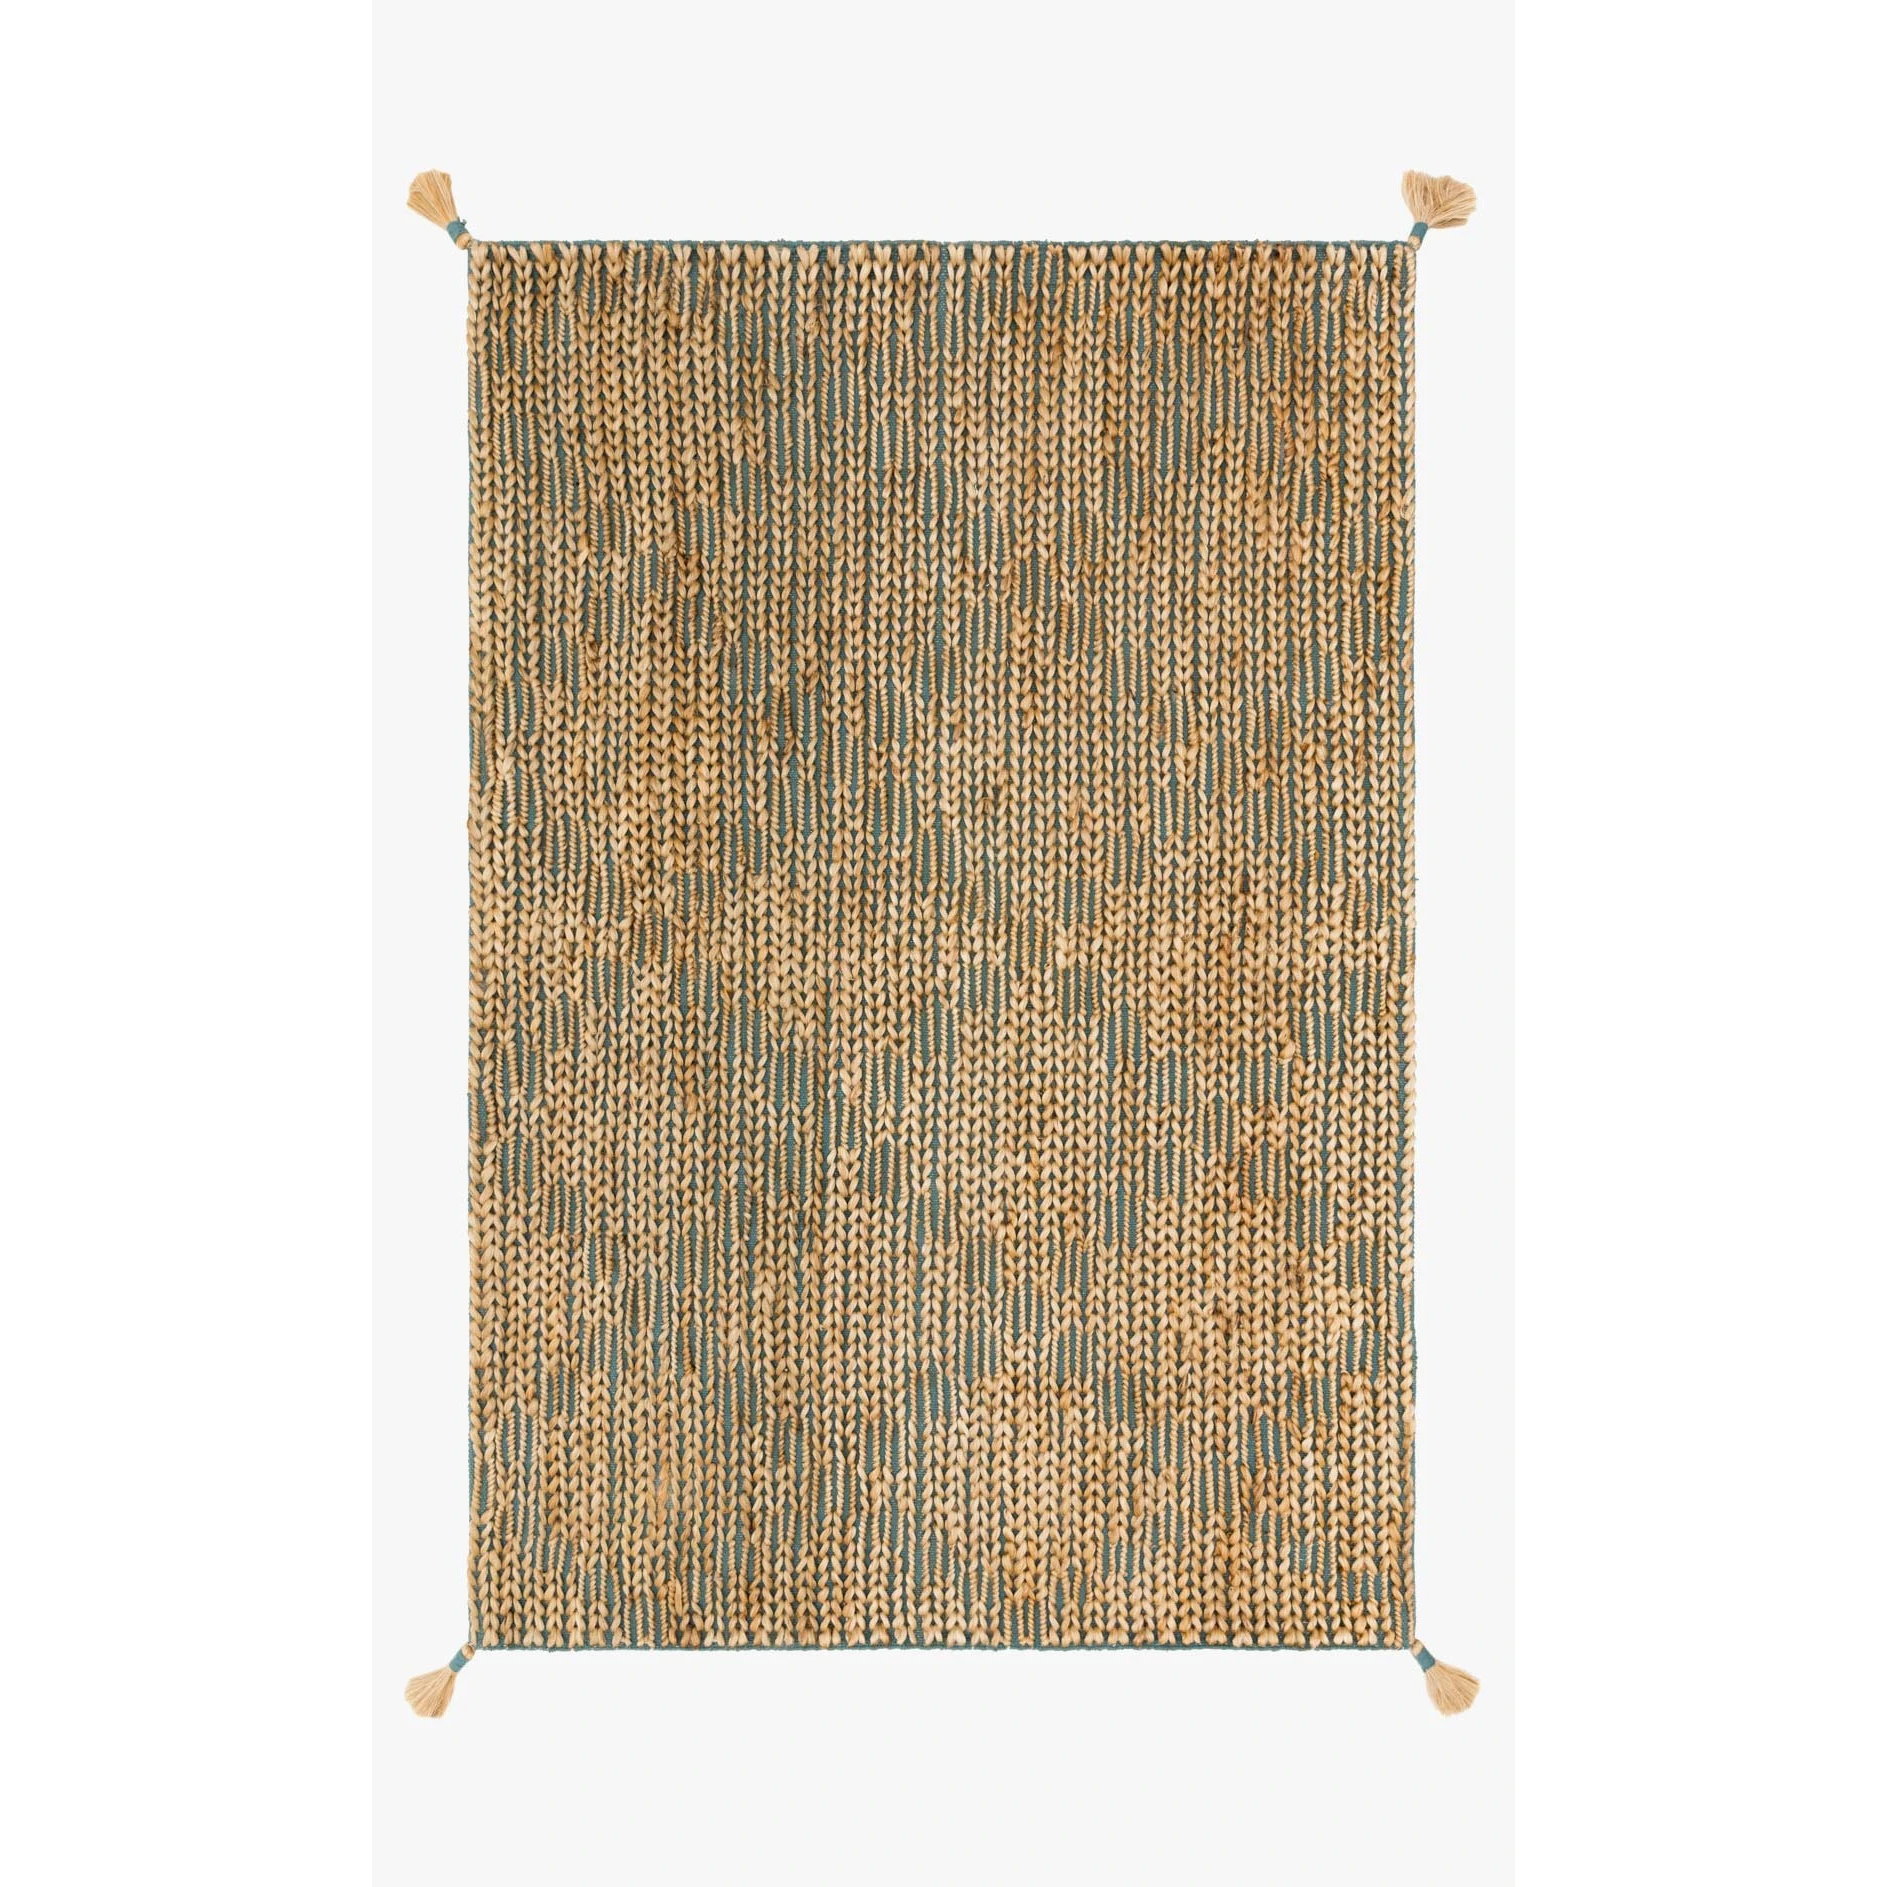 Justina Blakeney Playa Rug Collection - Ply-02 Aqua/Natural-Loloi Rugs-Blue Hand Home